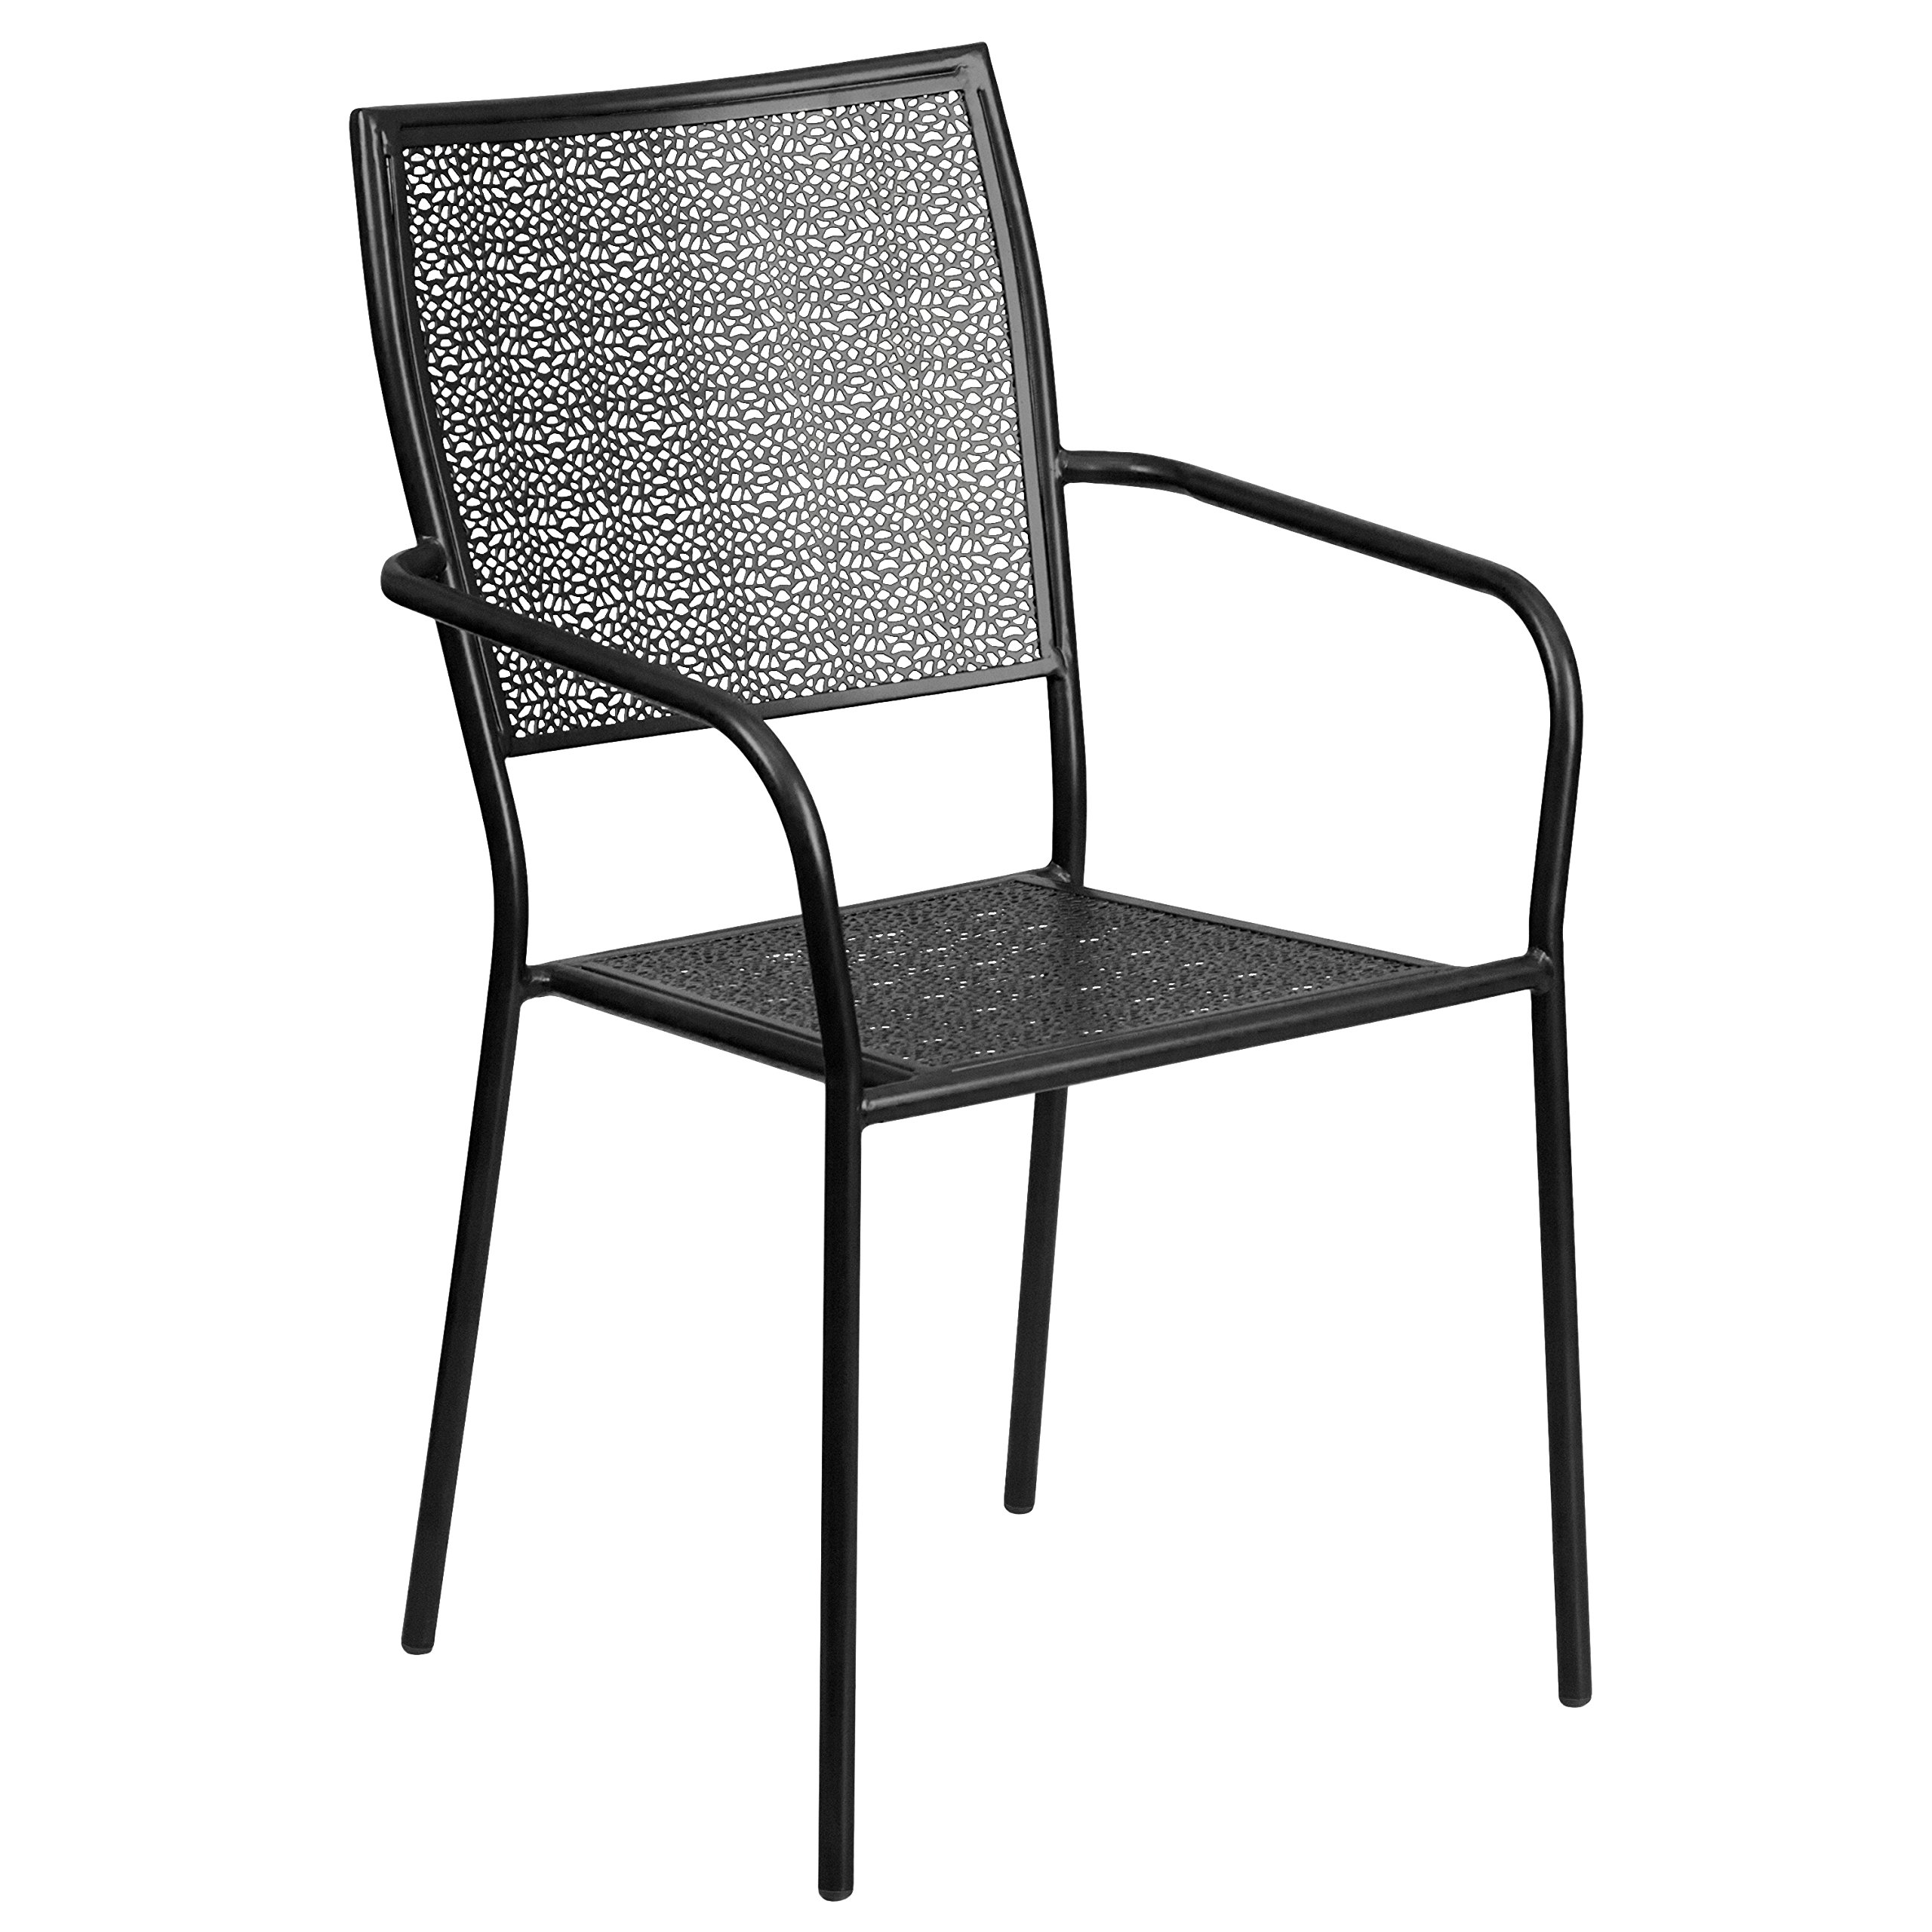 MFO Black Indoor-Outdoor Steel Patio Arm Chair with Square Back